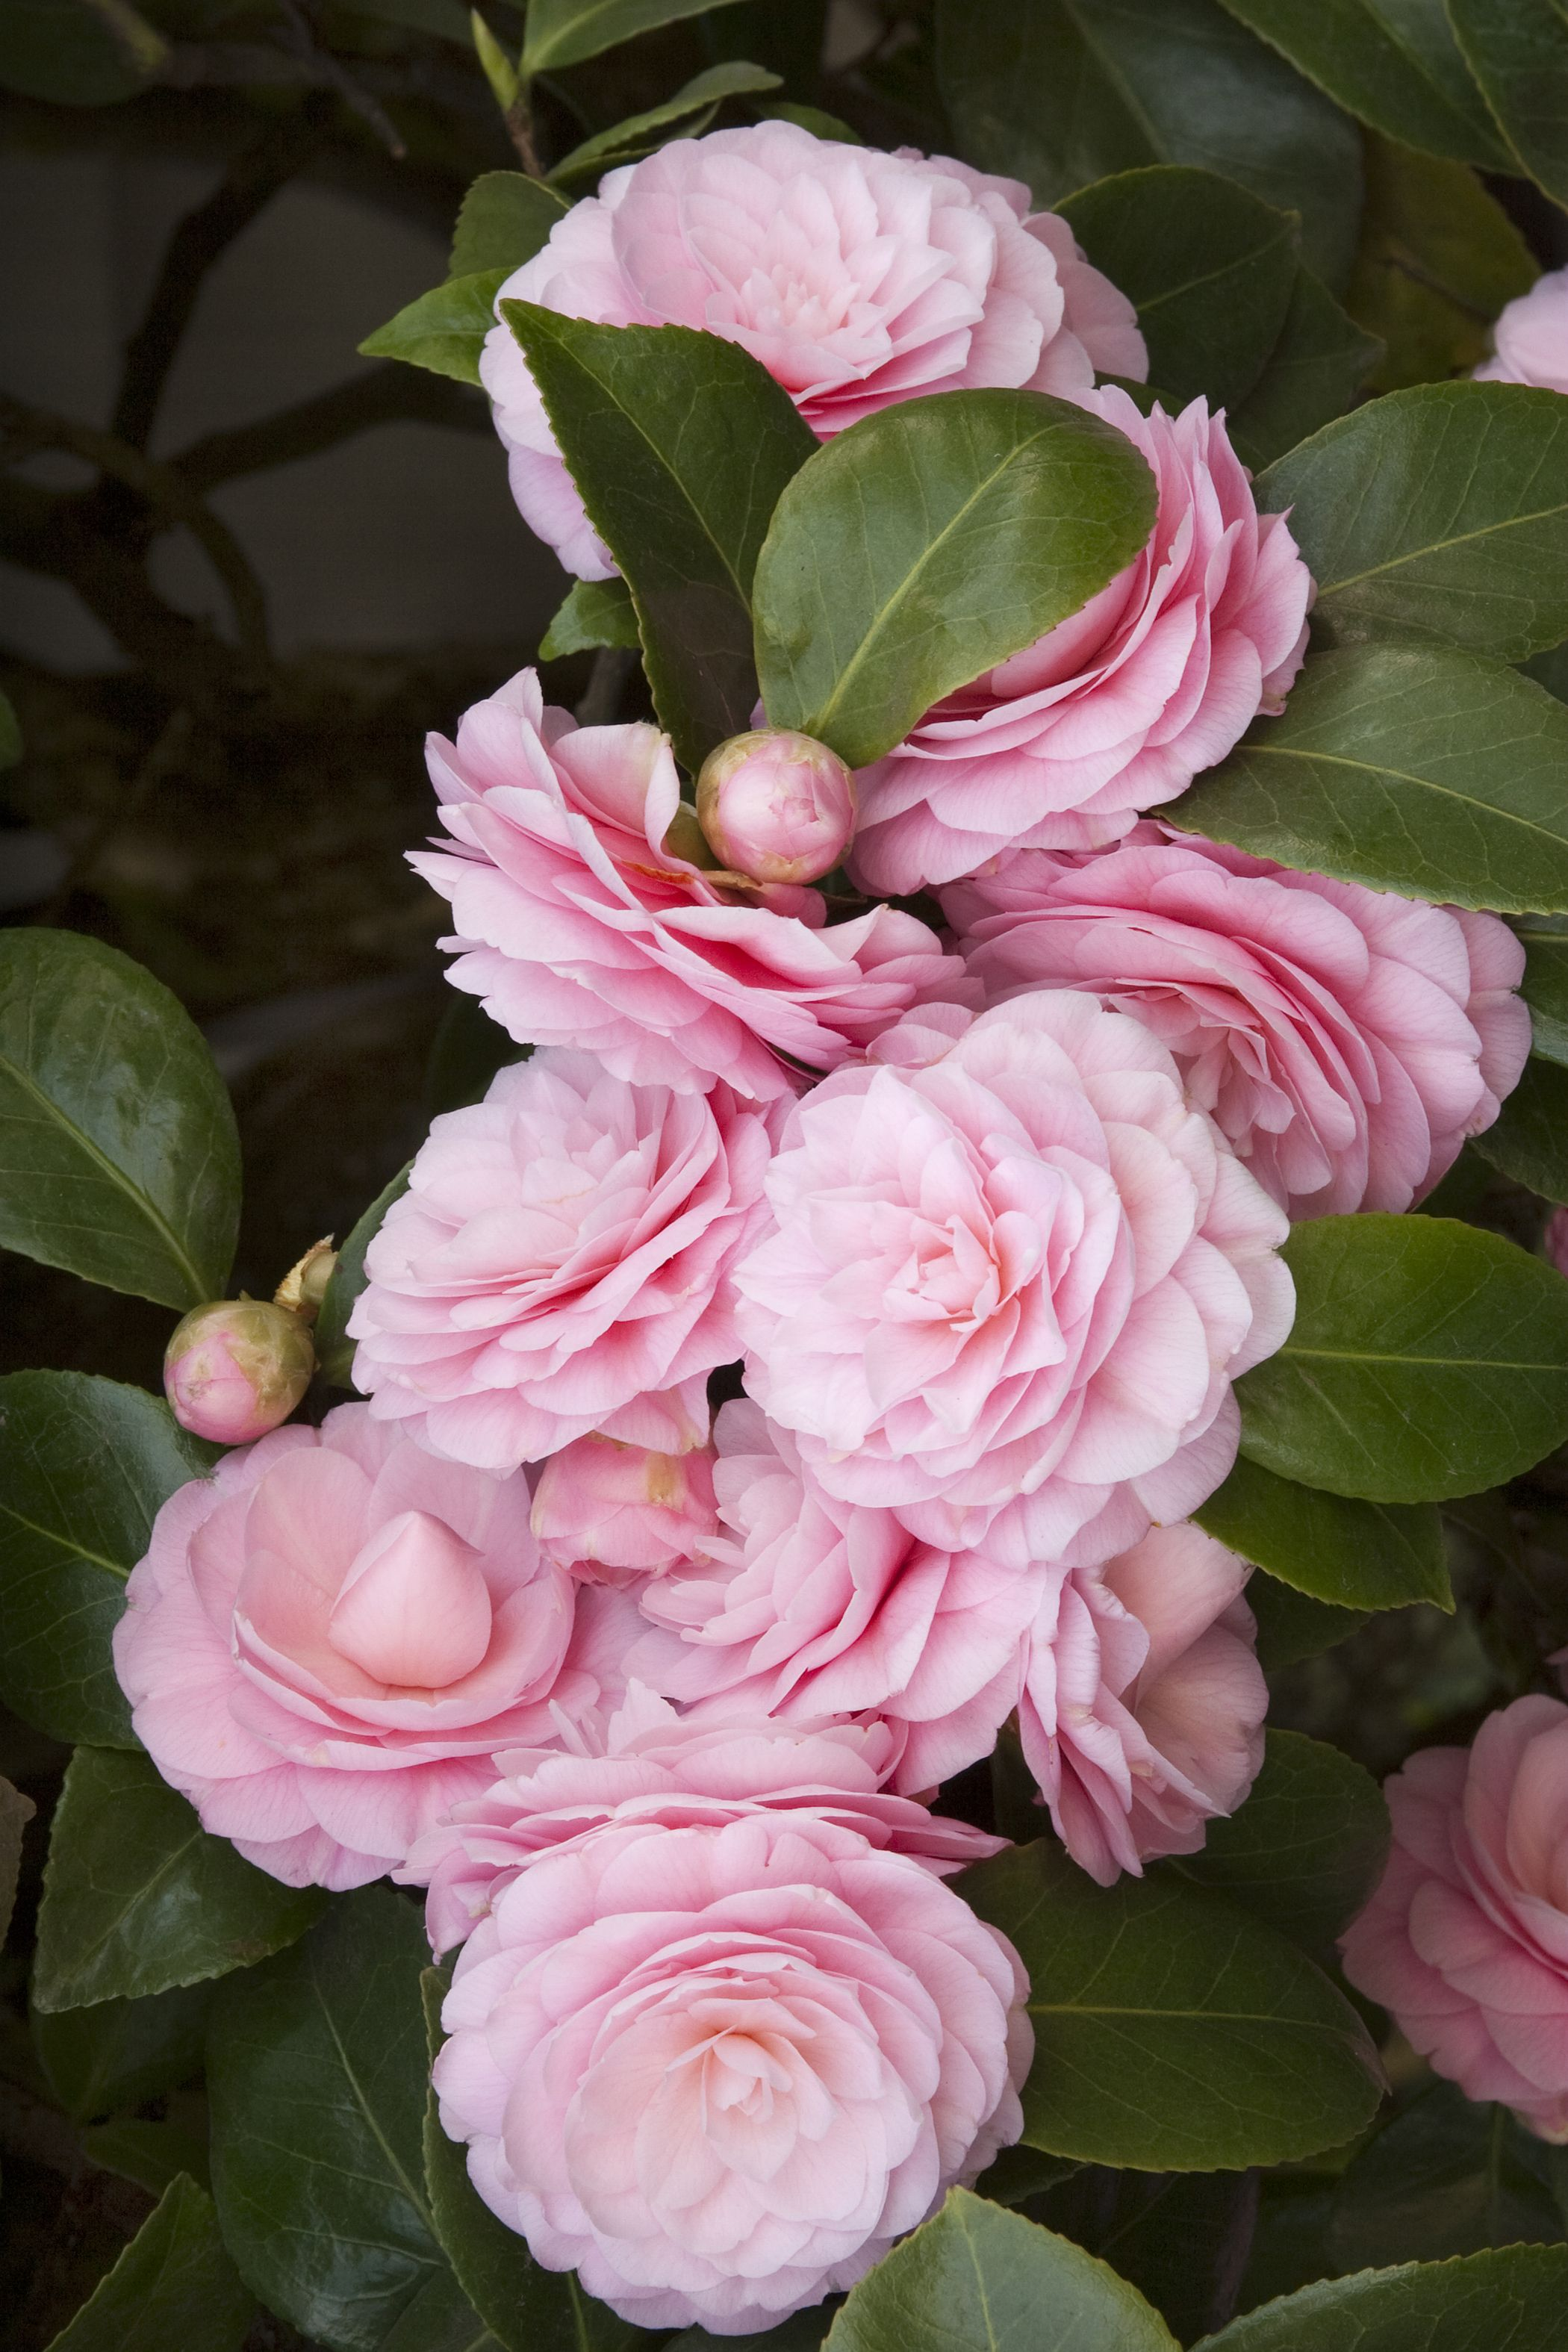 Flowers that bloom in the winter - Camellias Represent Longevity And Faithfulness Pearl Maxwell Camellia S Prized Flowers Bloom Mid To Late Winter